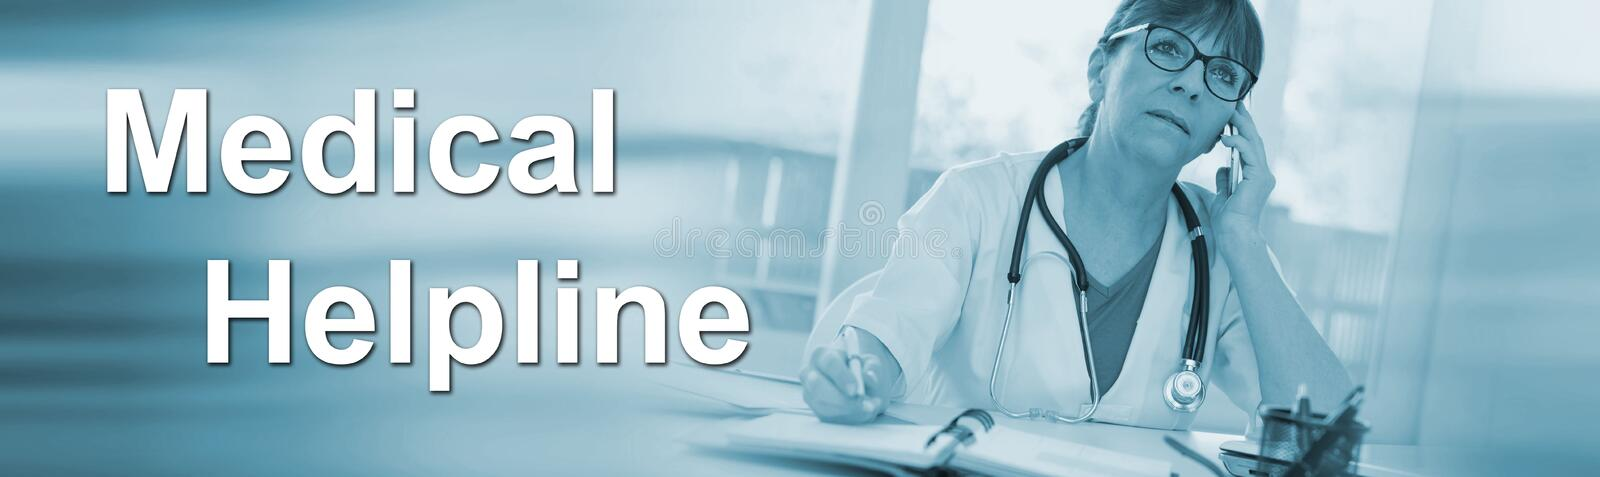 Concept of medical helpline royalty free stock image